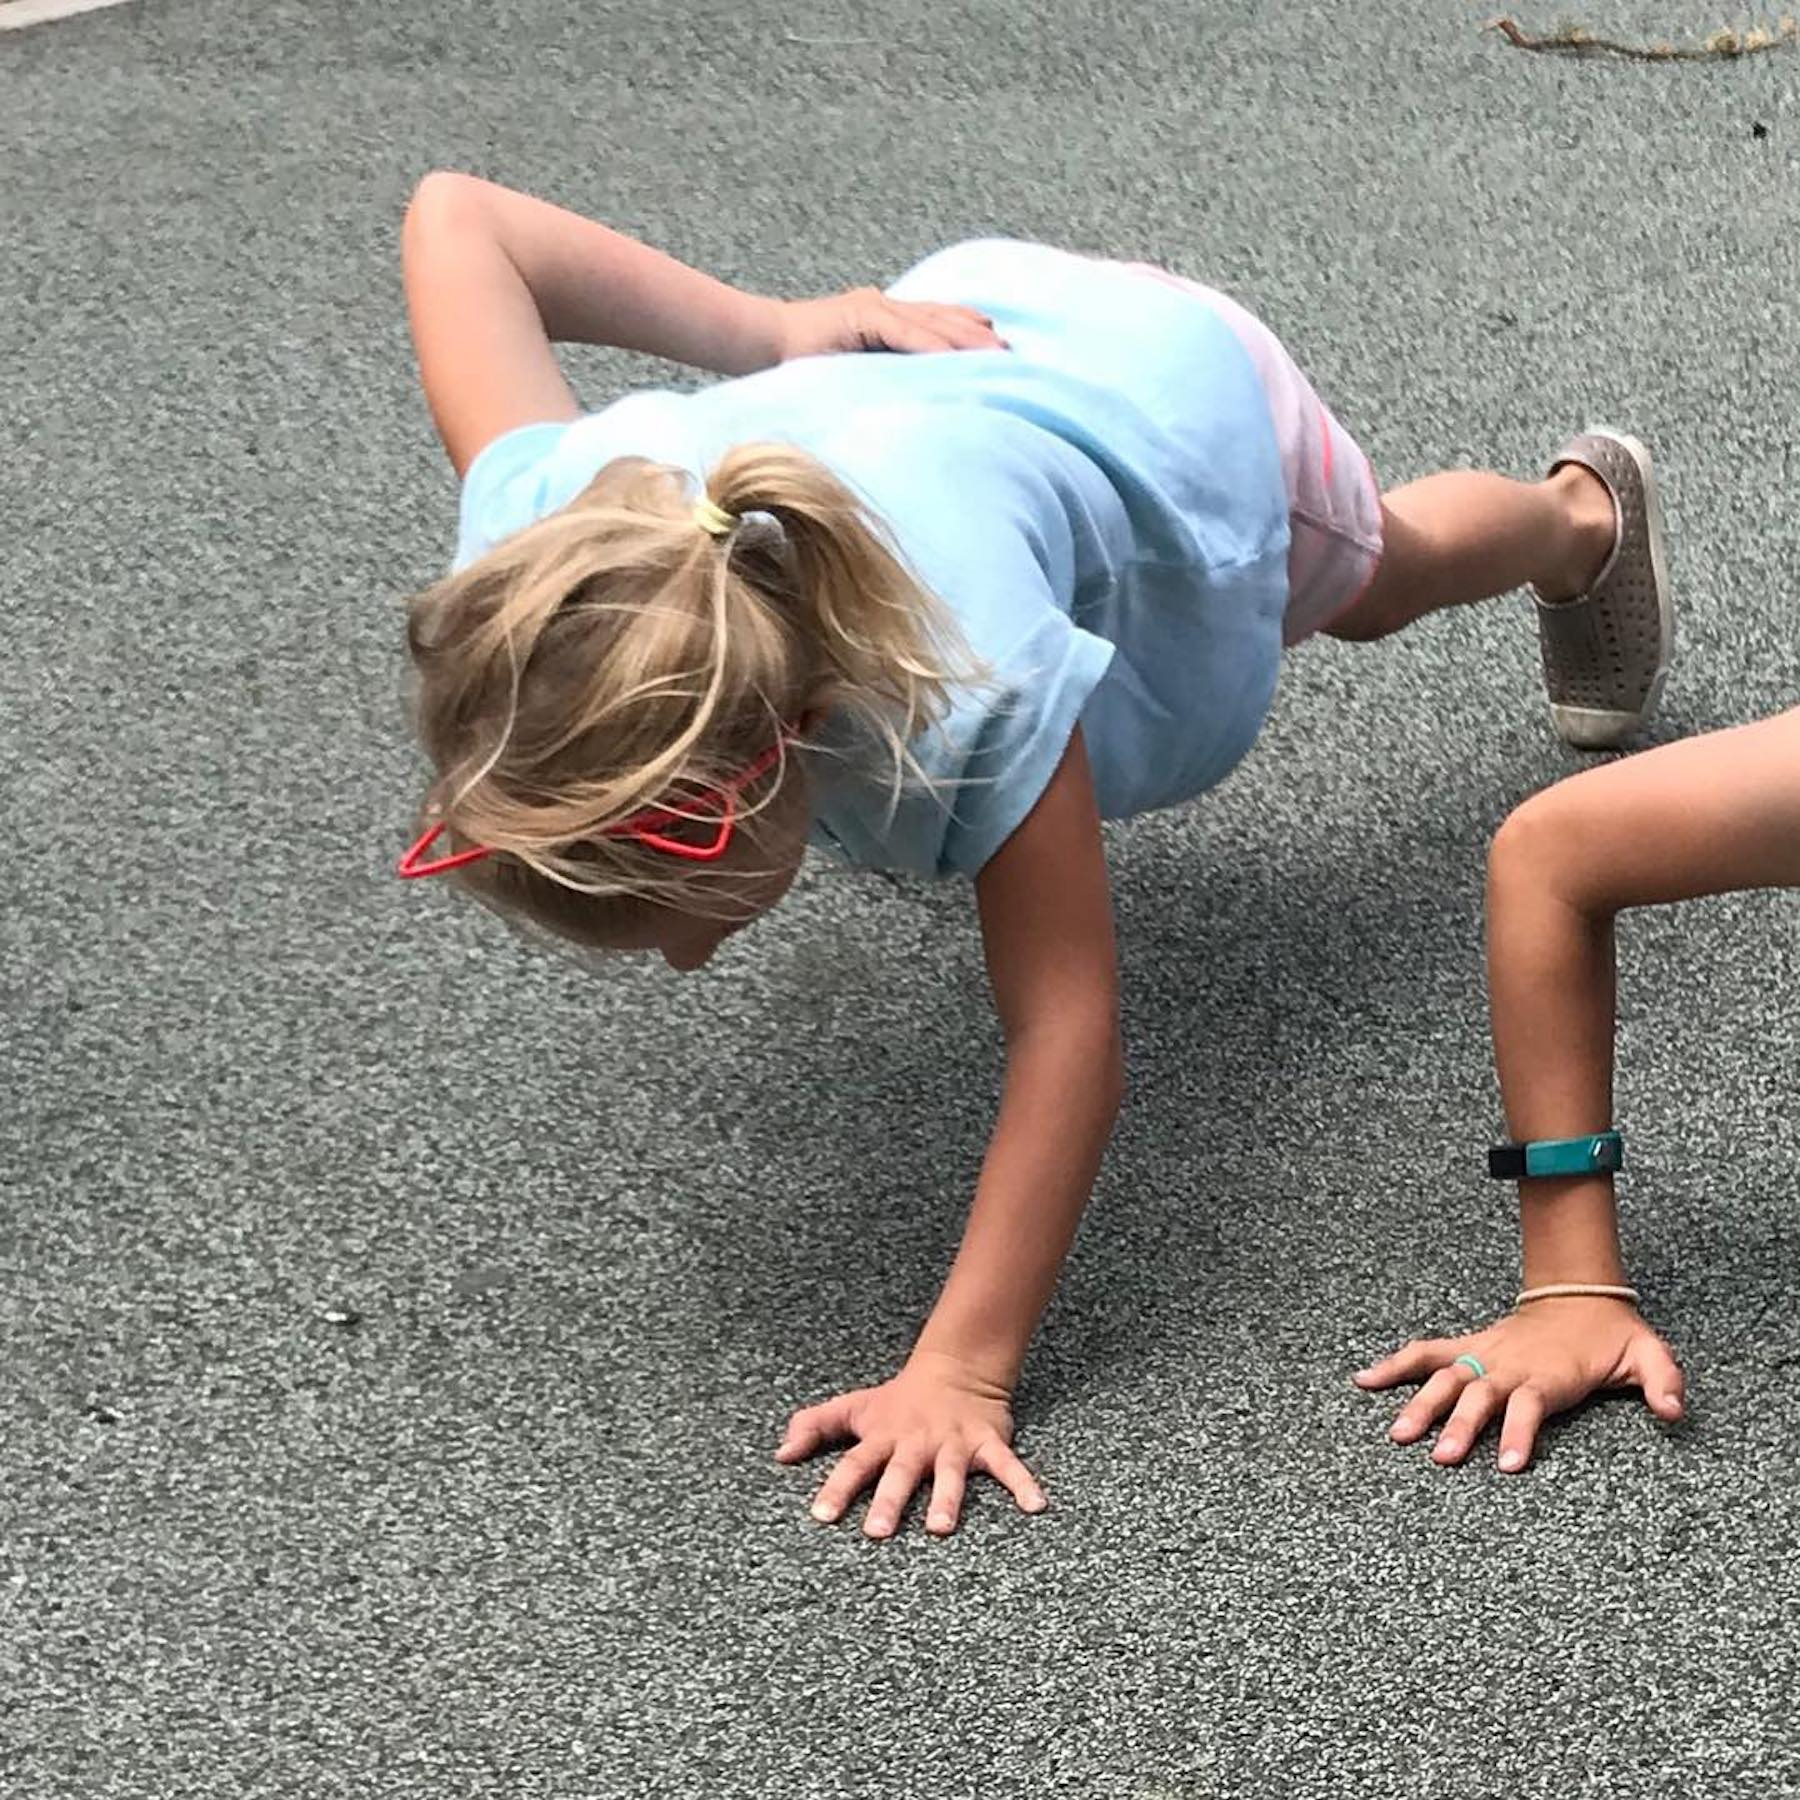 One-handed push-up